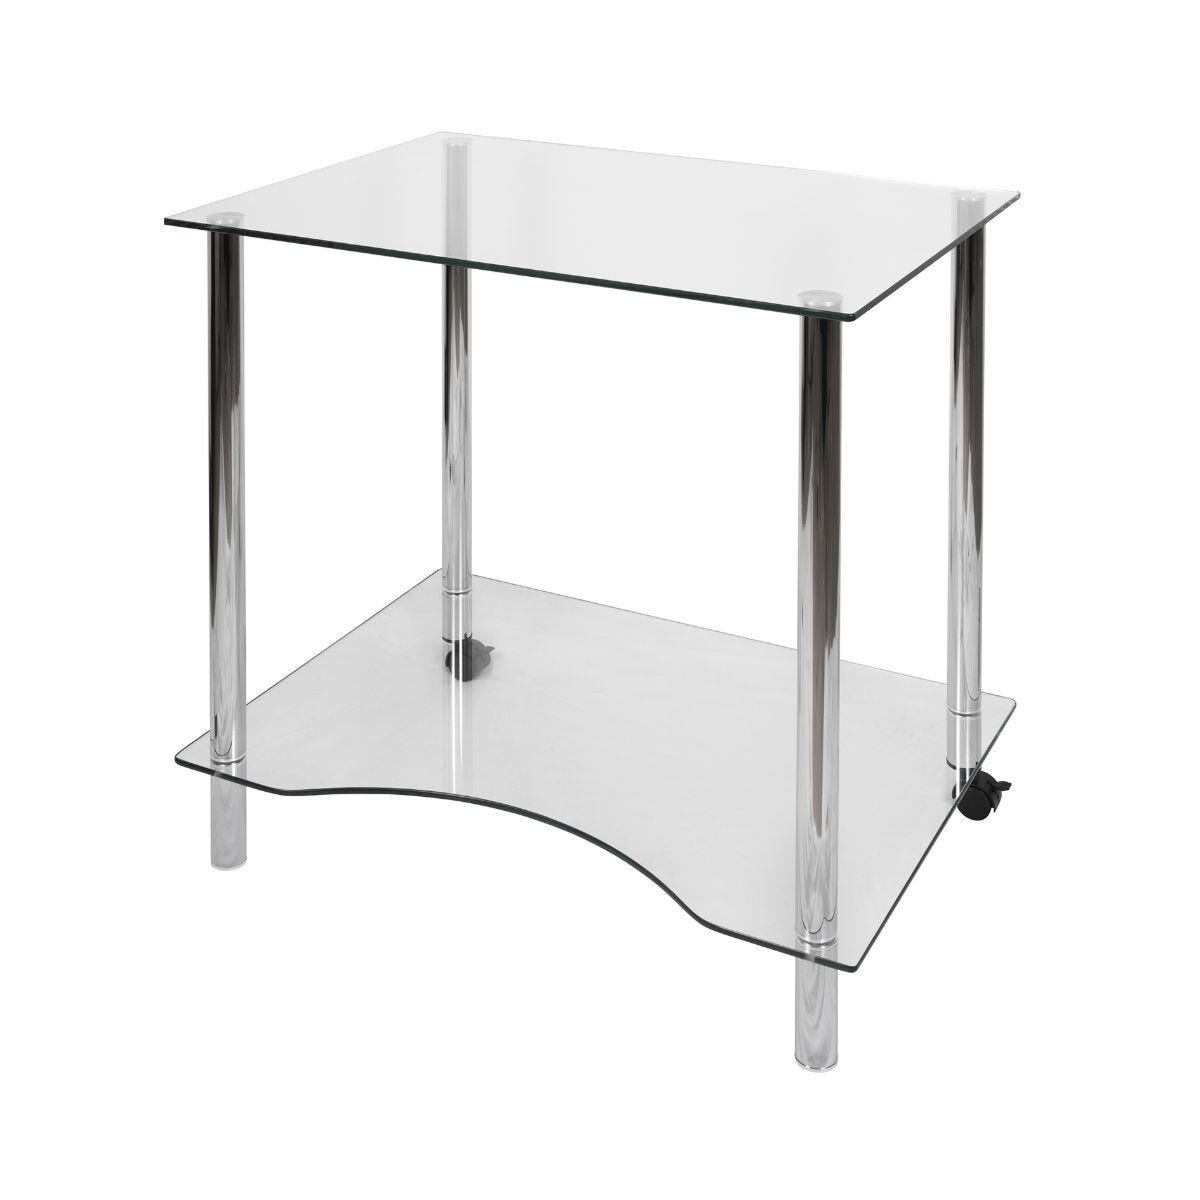 Teknik Office Crystal Glass Workstation Space Saving